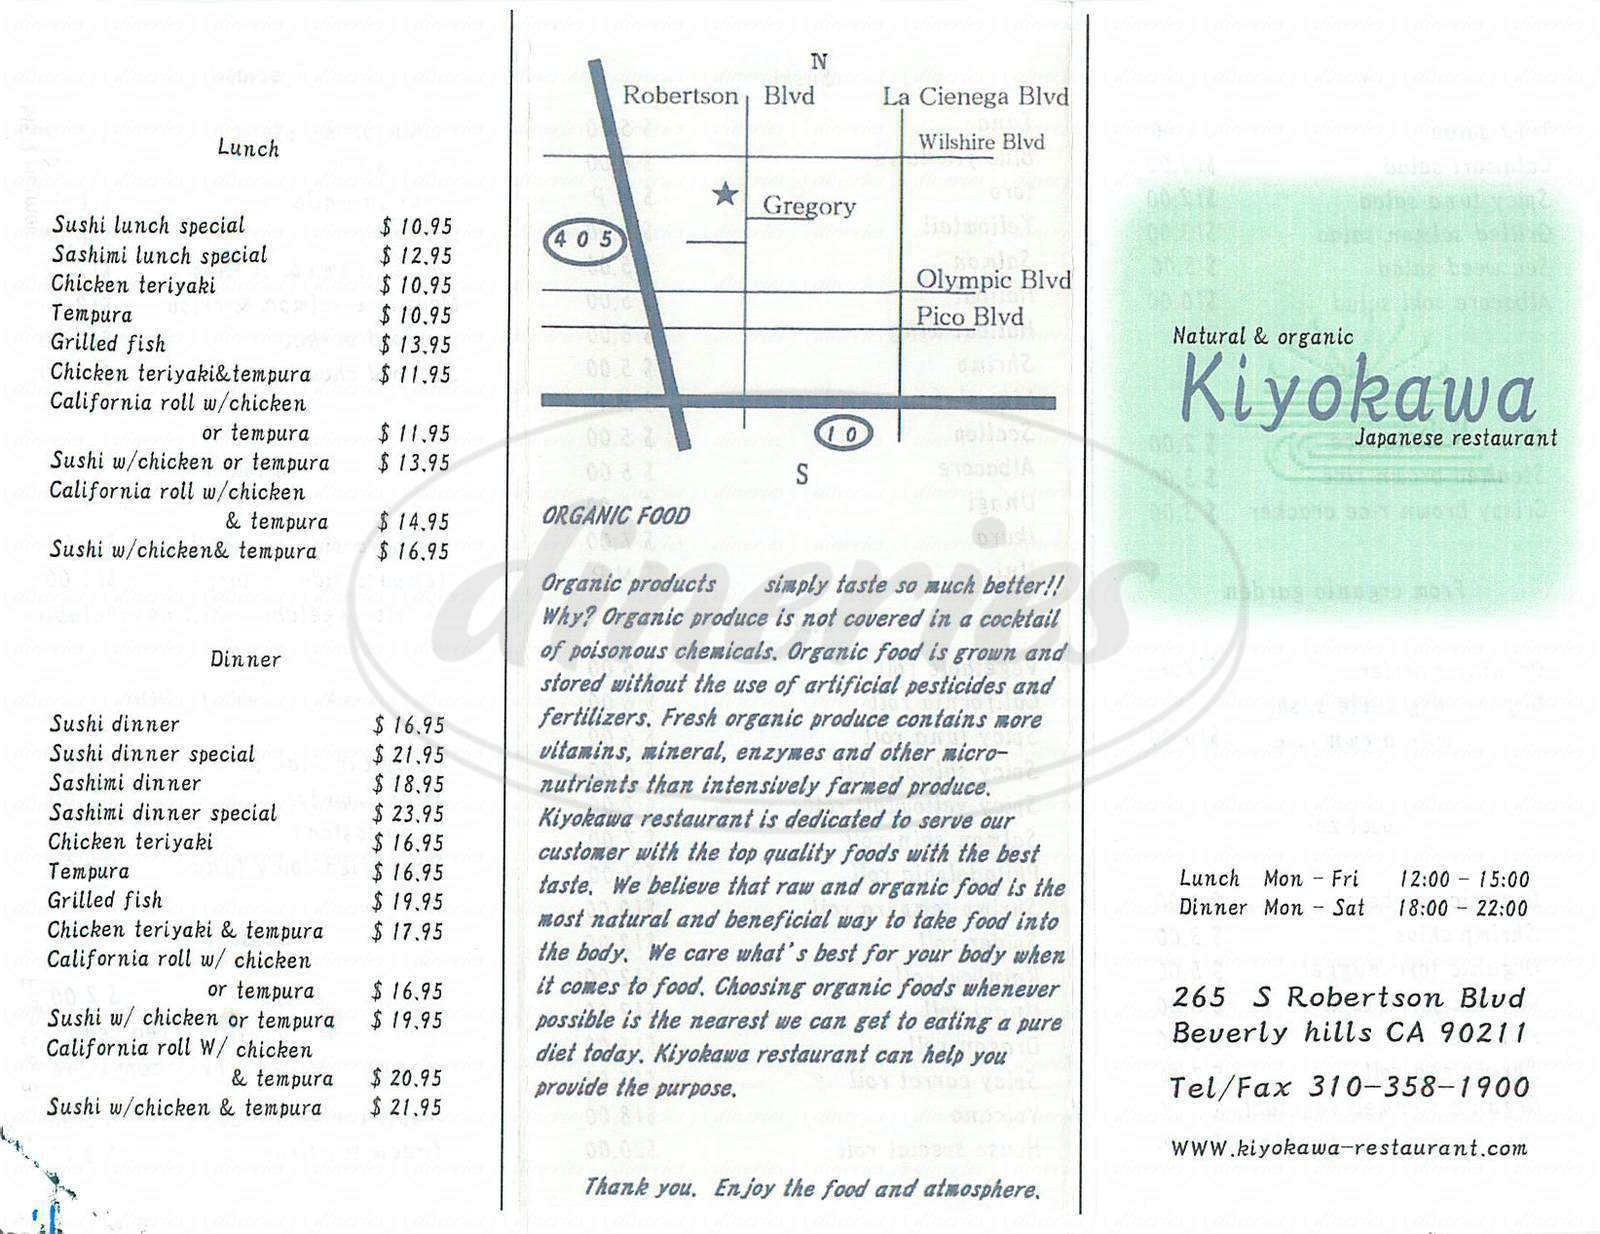 menu for Kiyokawa